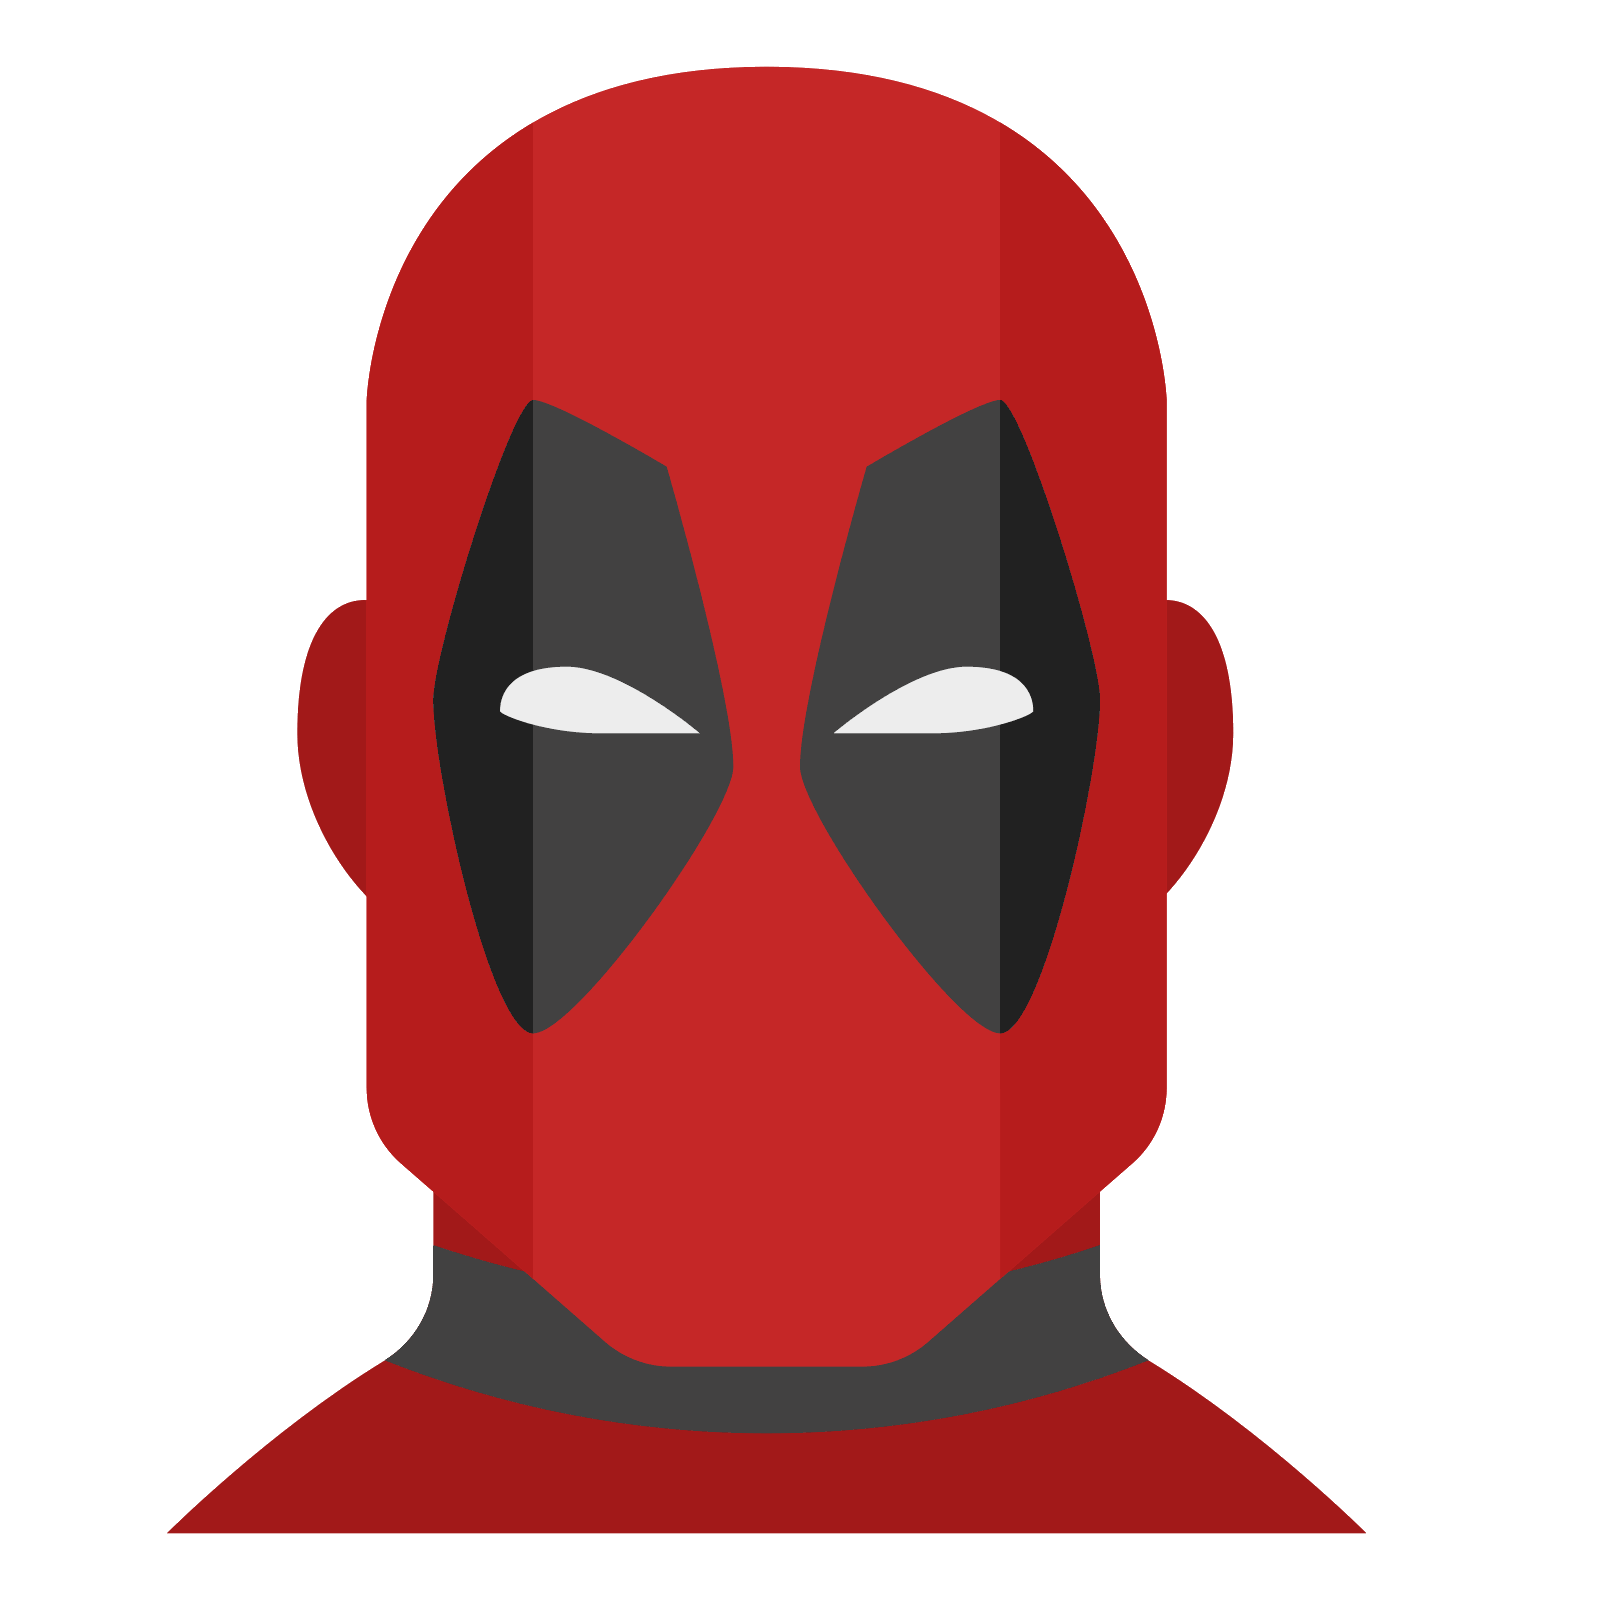 Deadpool Clipart Pdf Deadpool Pdf Transparent Free For Download